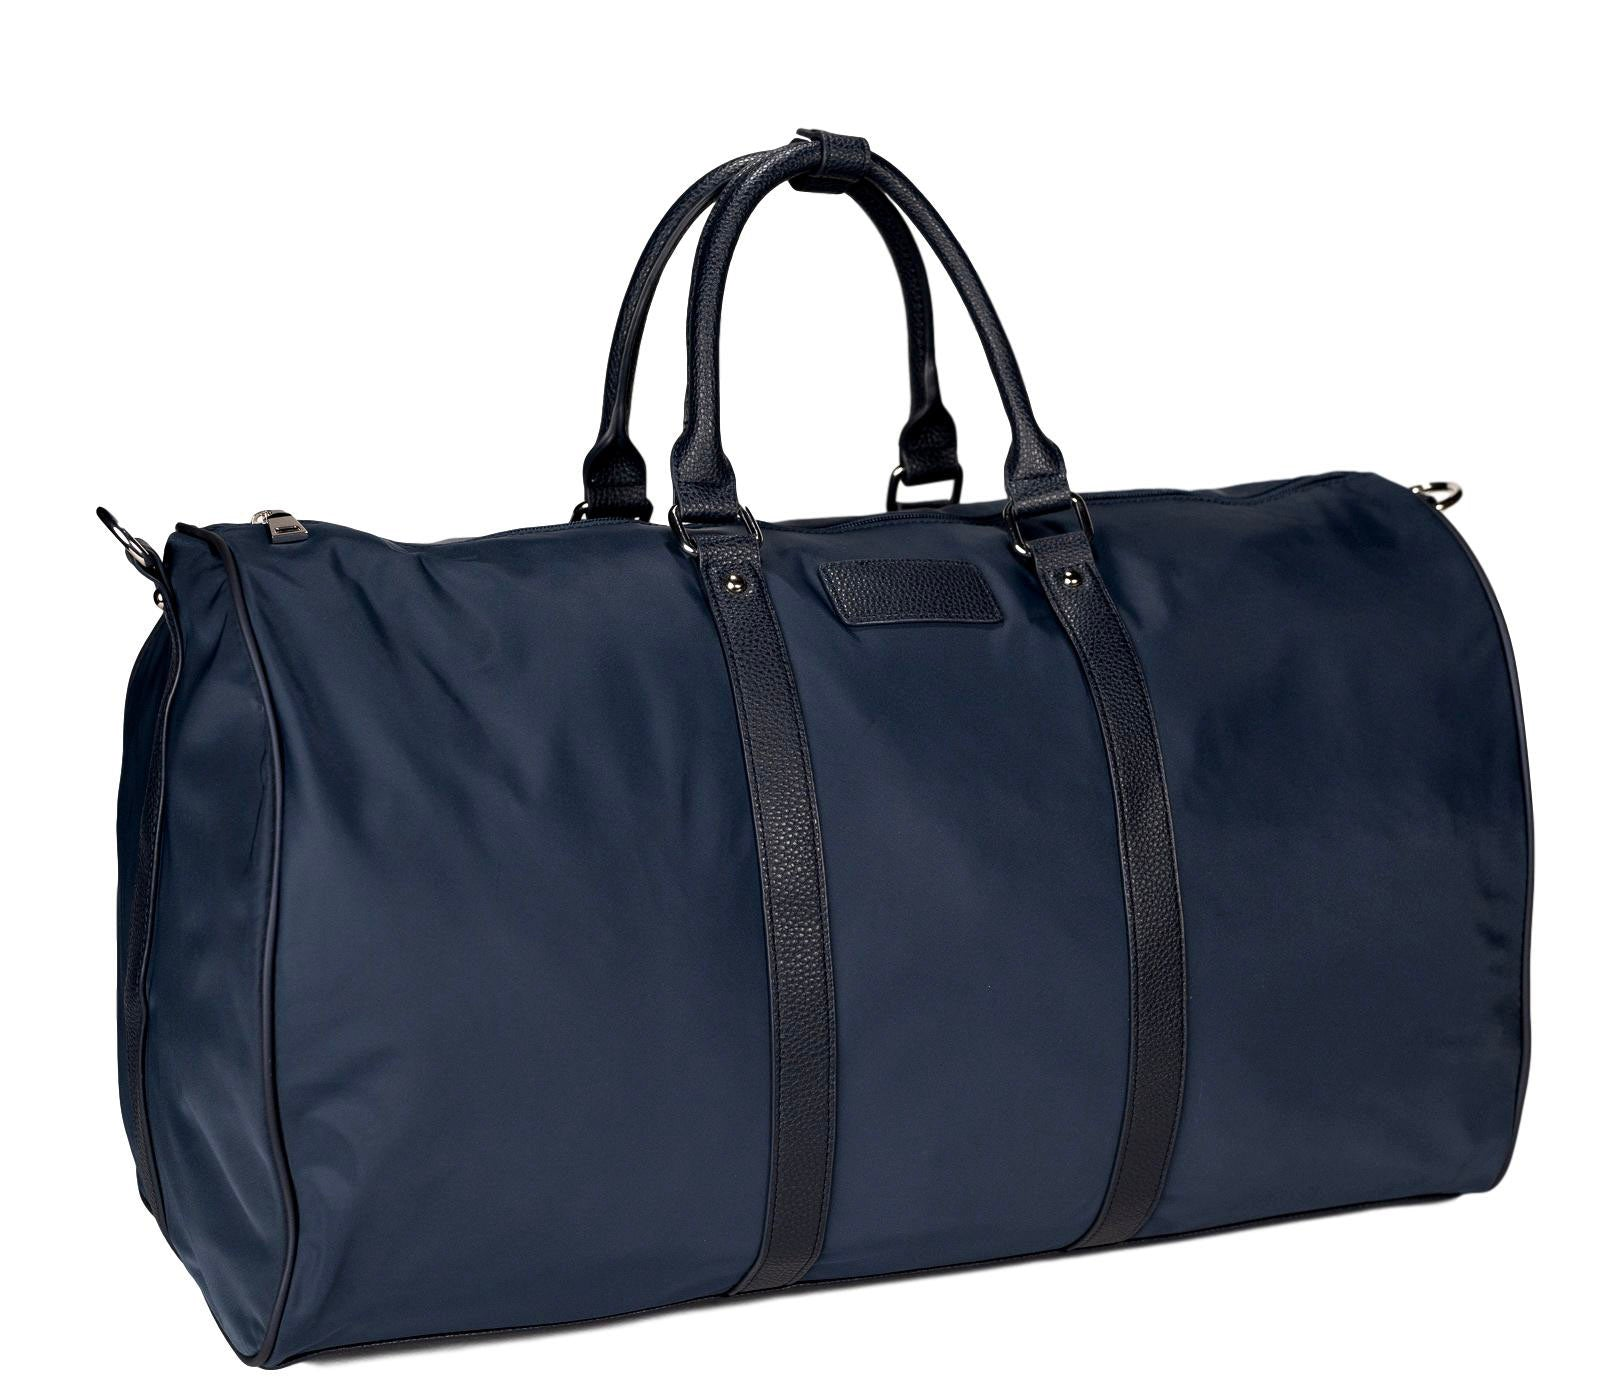 Mon Purse Nylon Brooklyn Duffle Bag in Navy